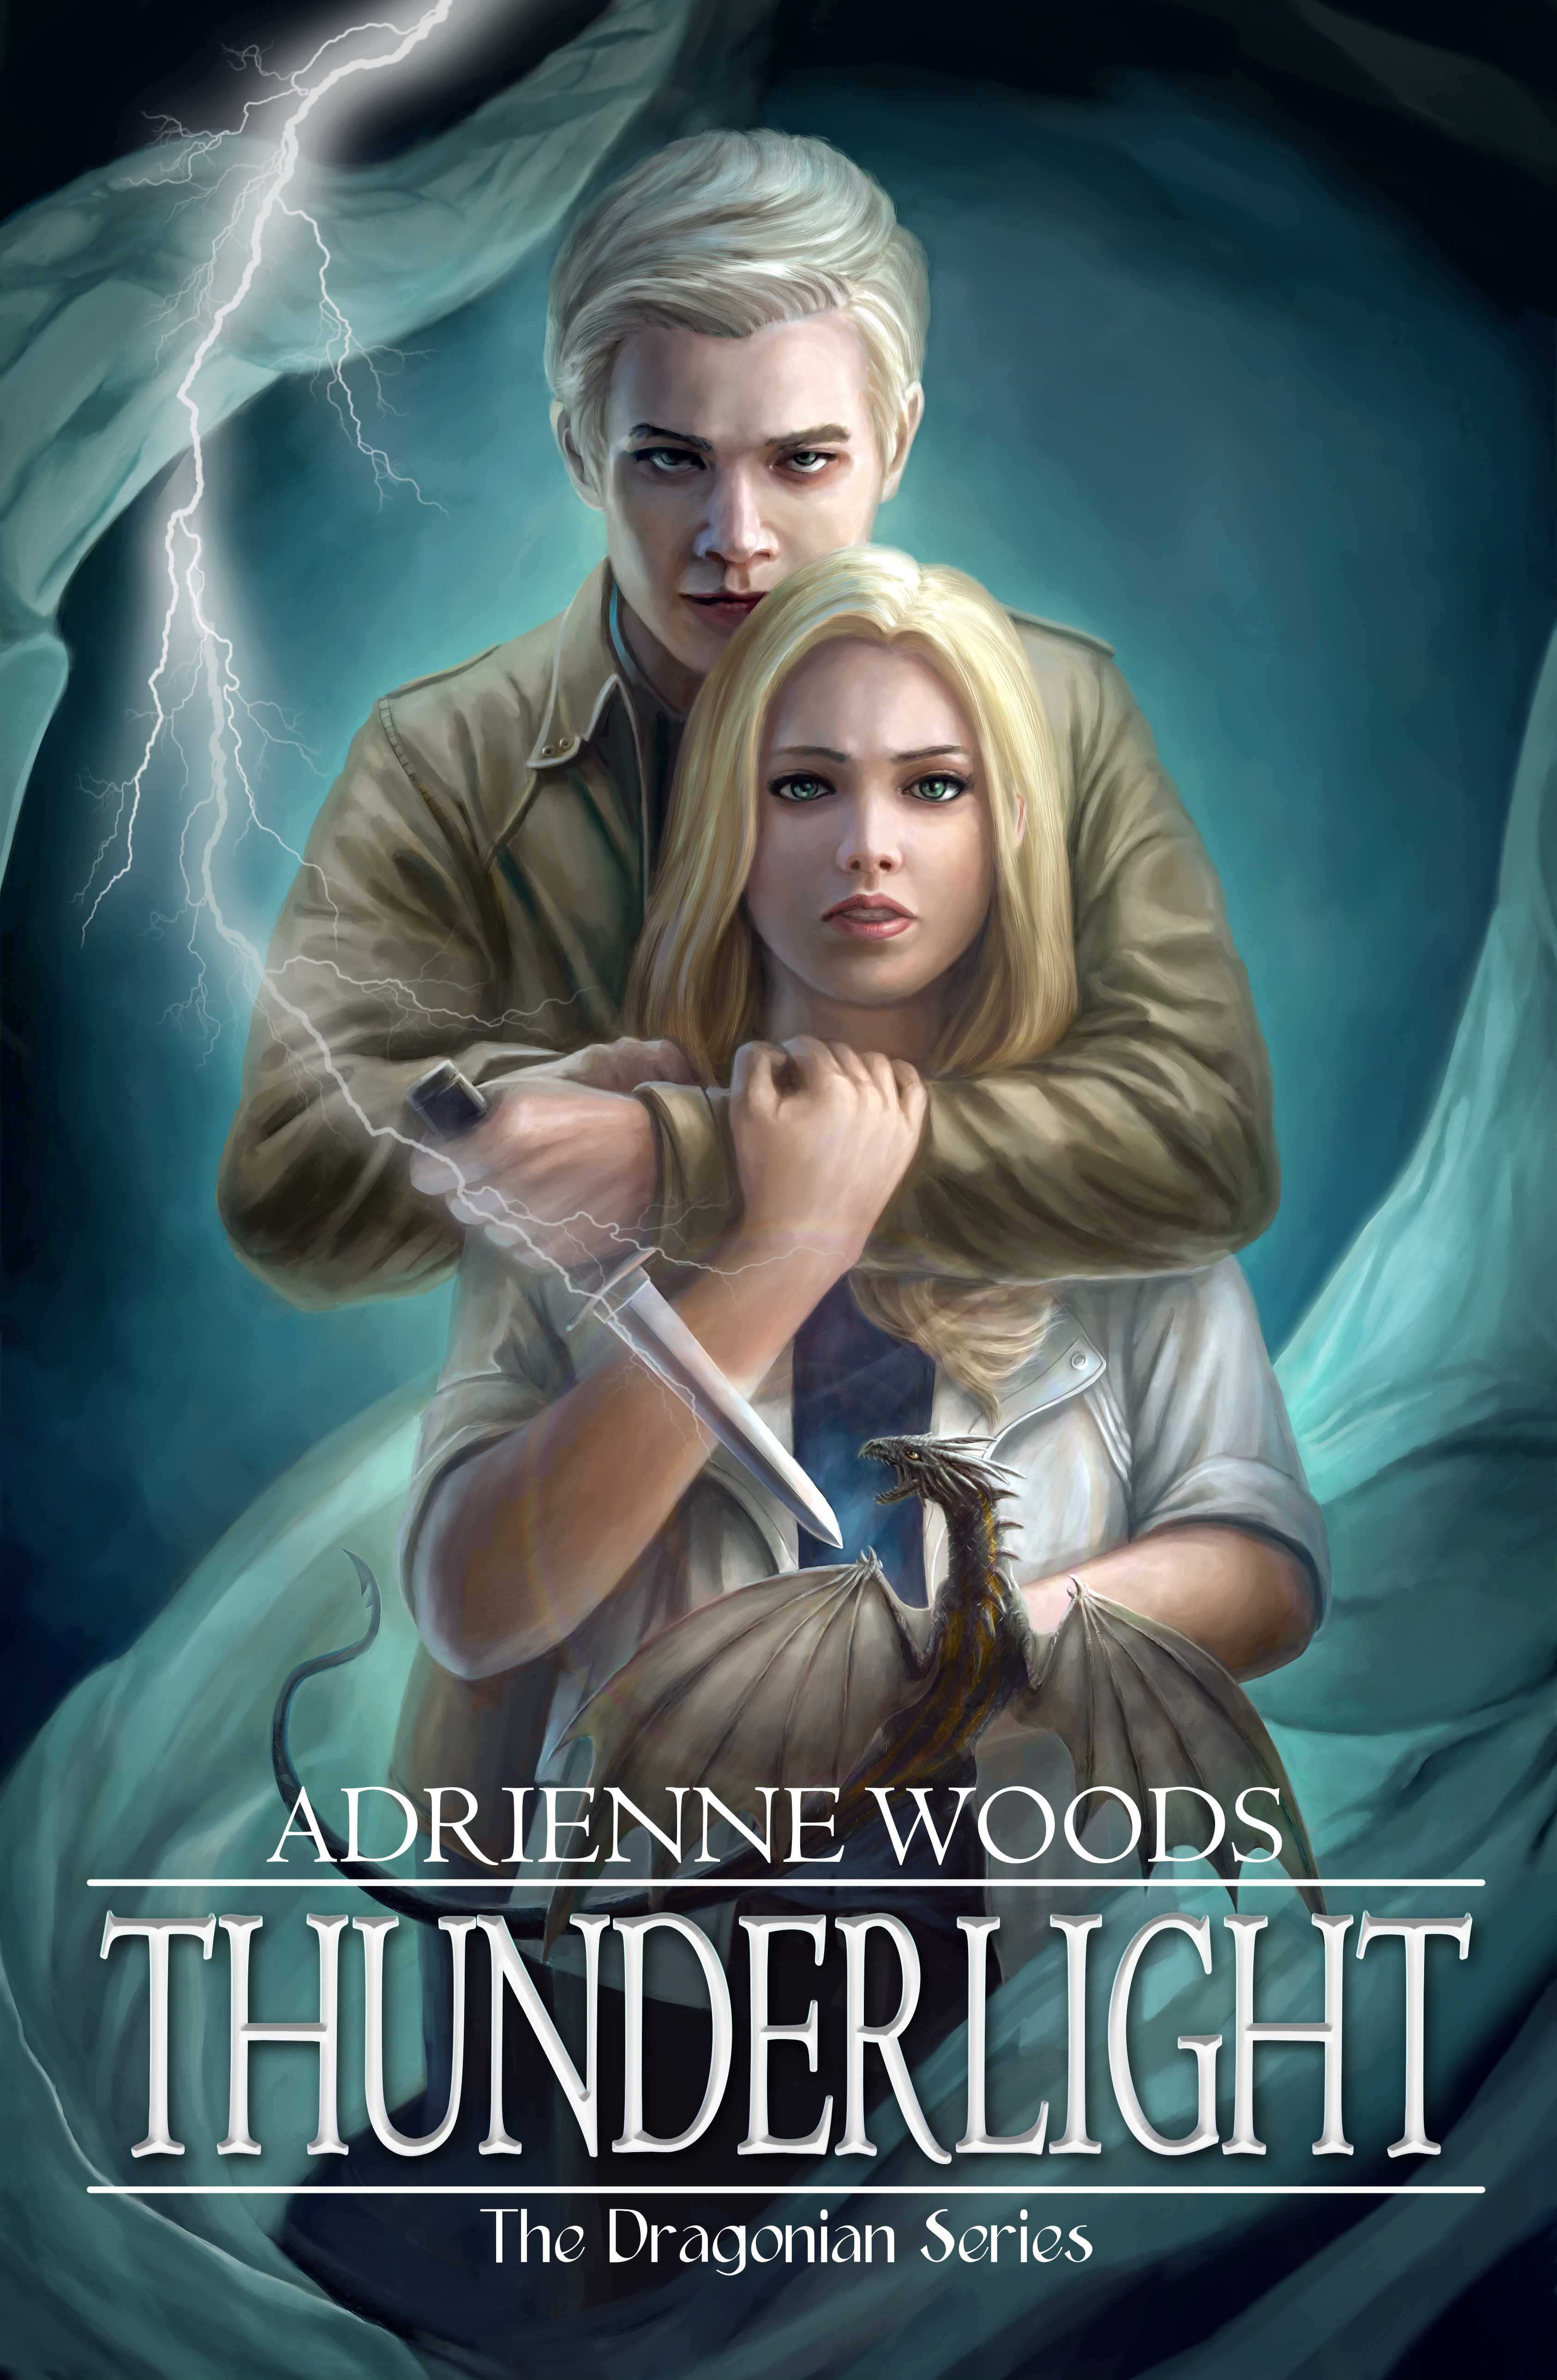 Thunderlight by Adrienne Woods